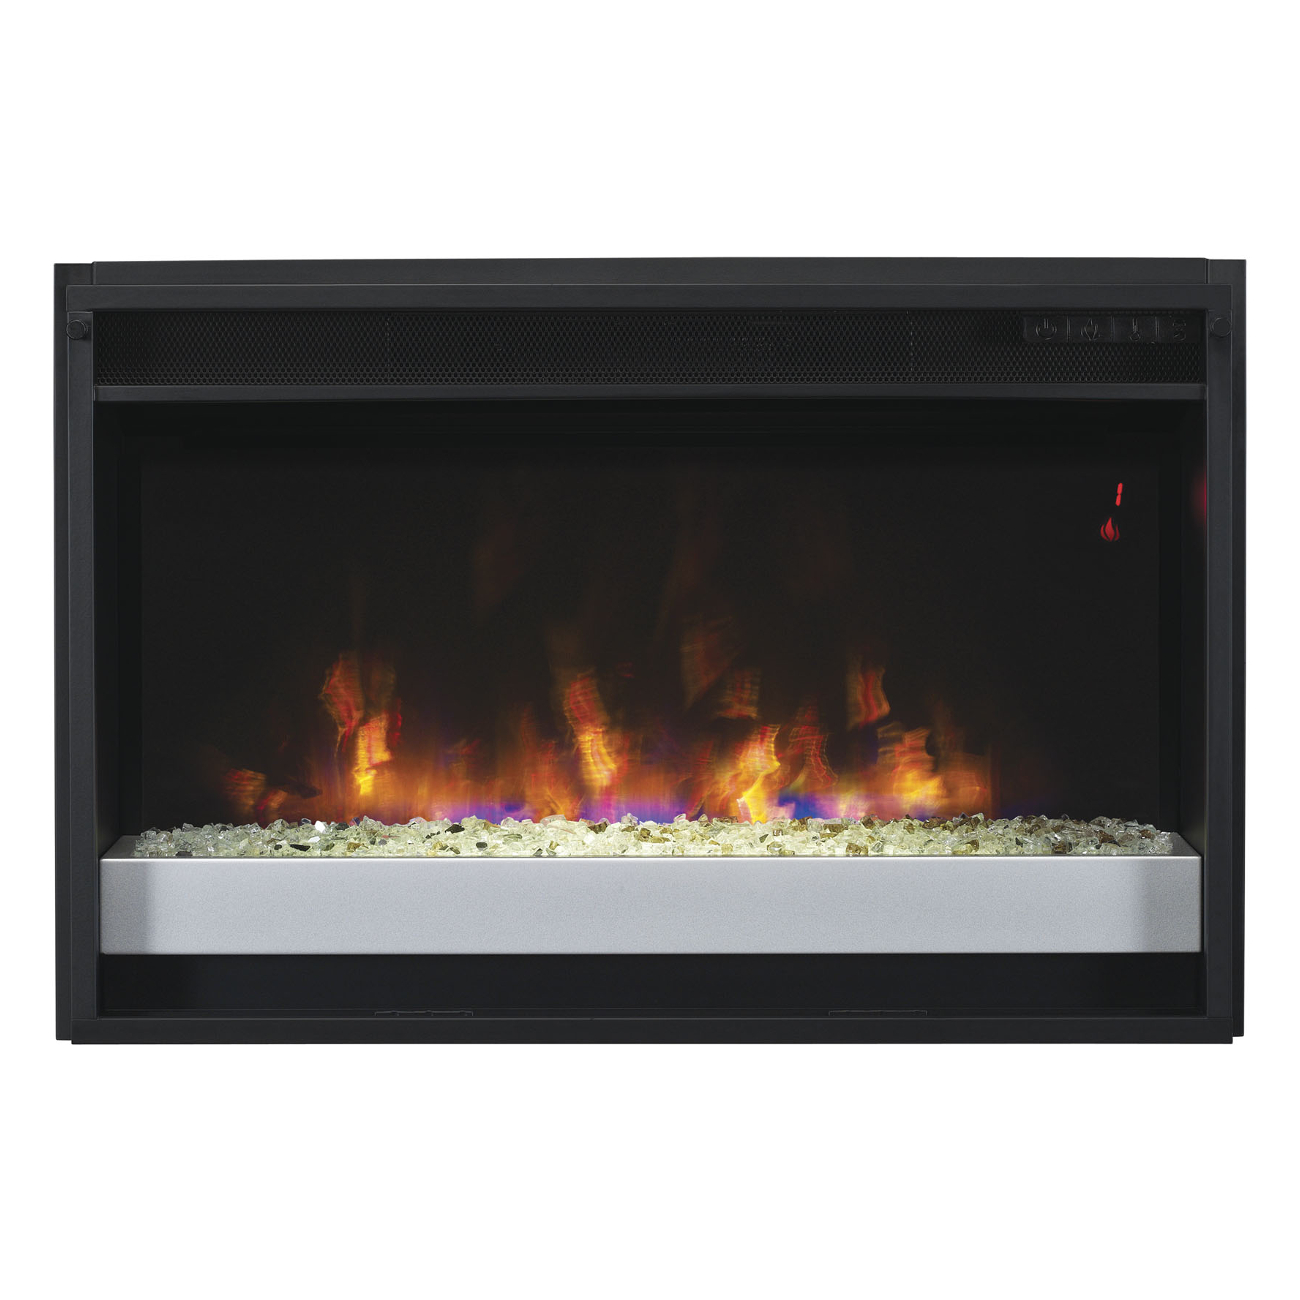 Classic Flame 27 Electric Fireplace Insert 26ef031gpg 201 Electric Fireplaces